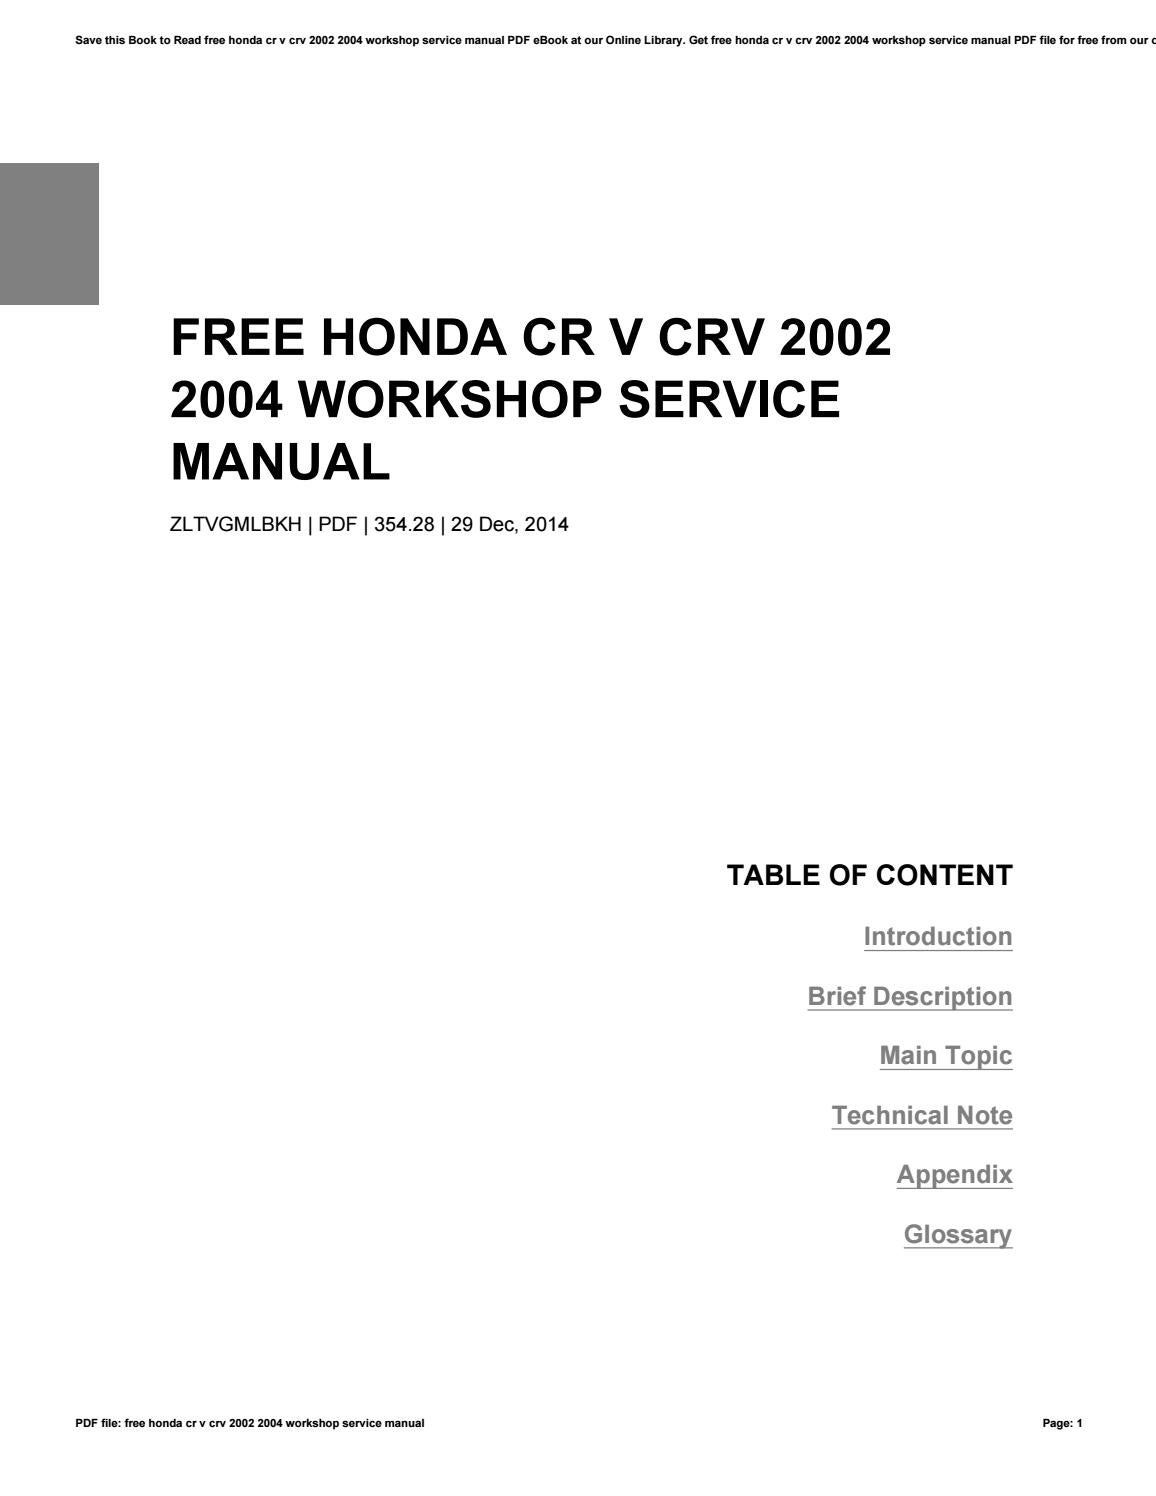 Free Honda Cr V Crv 2002 2004 Workshop Service Manual By Rh Issuu Com 2004 Honda  Crv Factory Service Manual Pdf 2004 Honda Crv Factory Service Manual Pdf